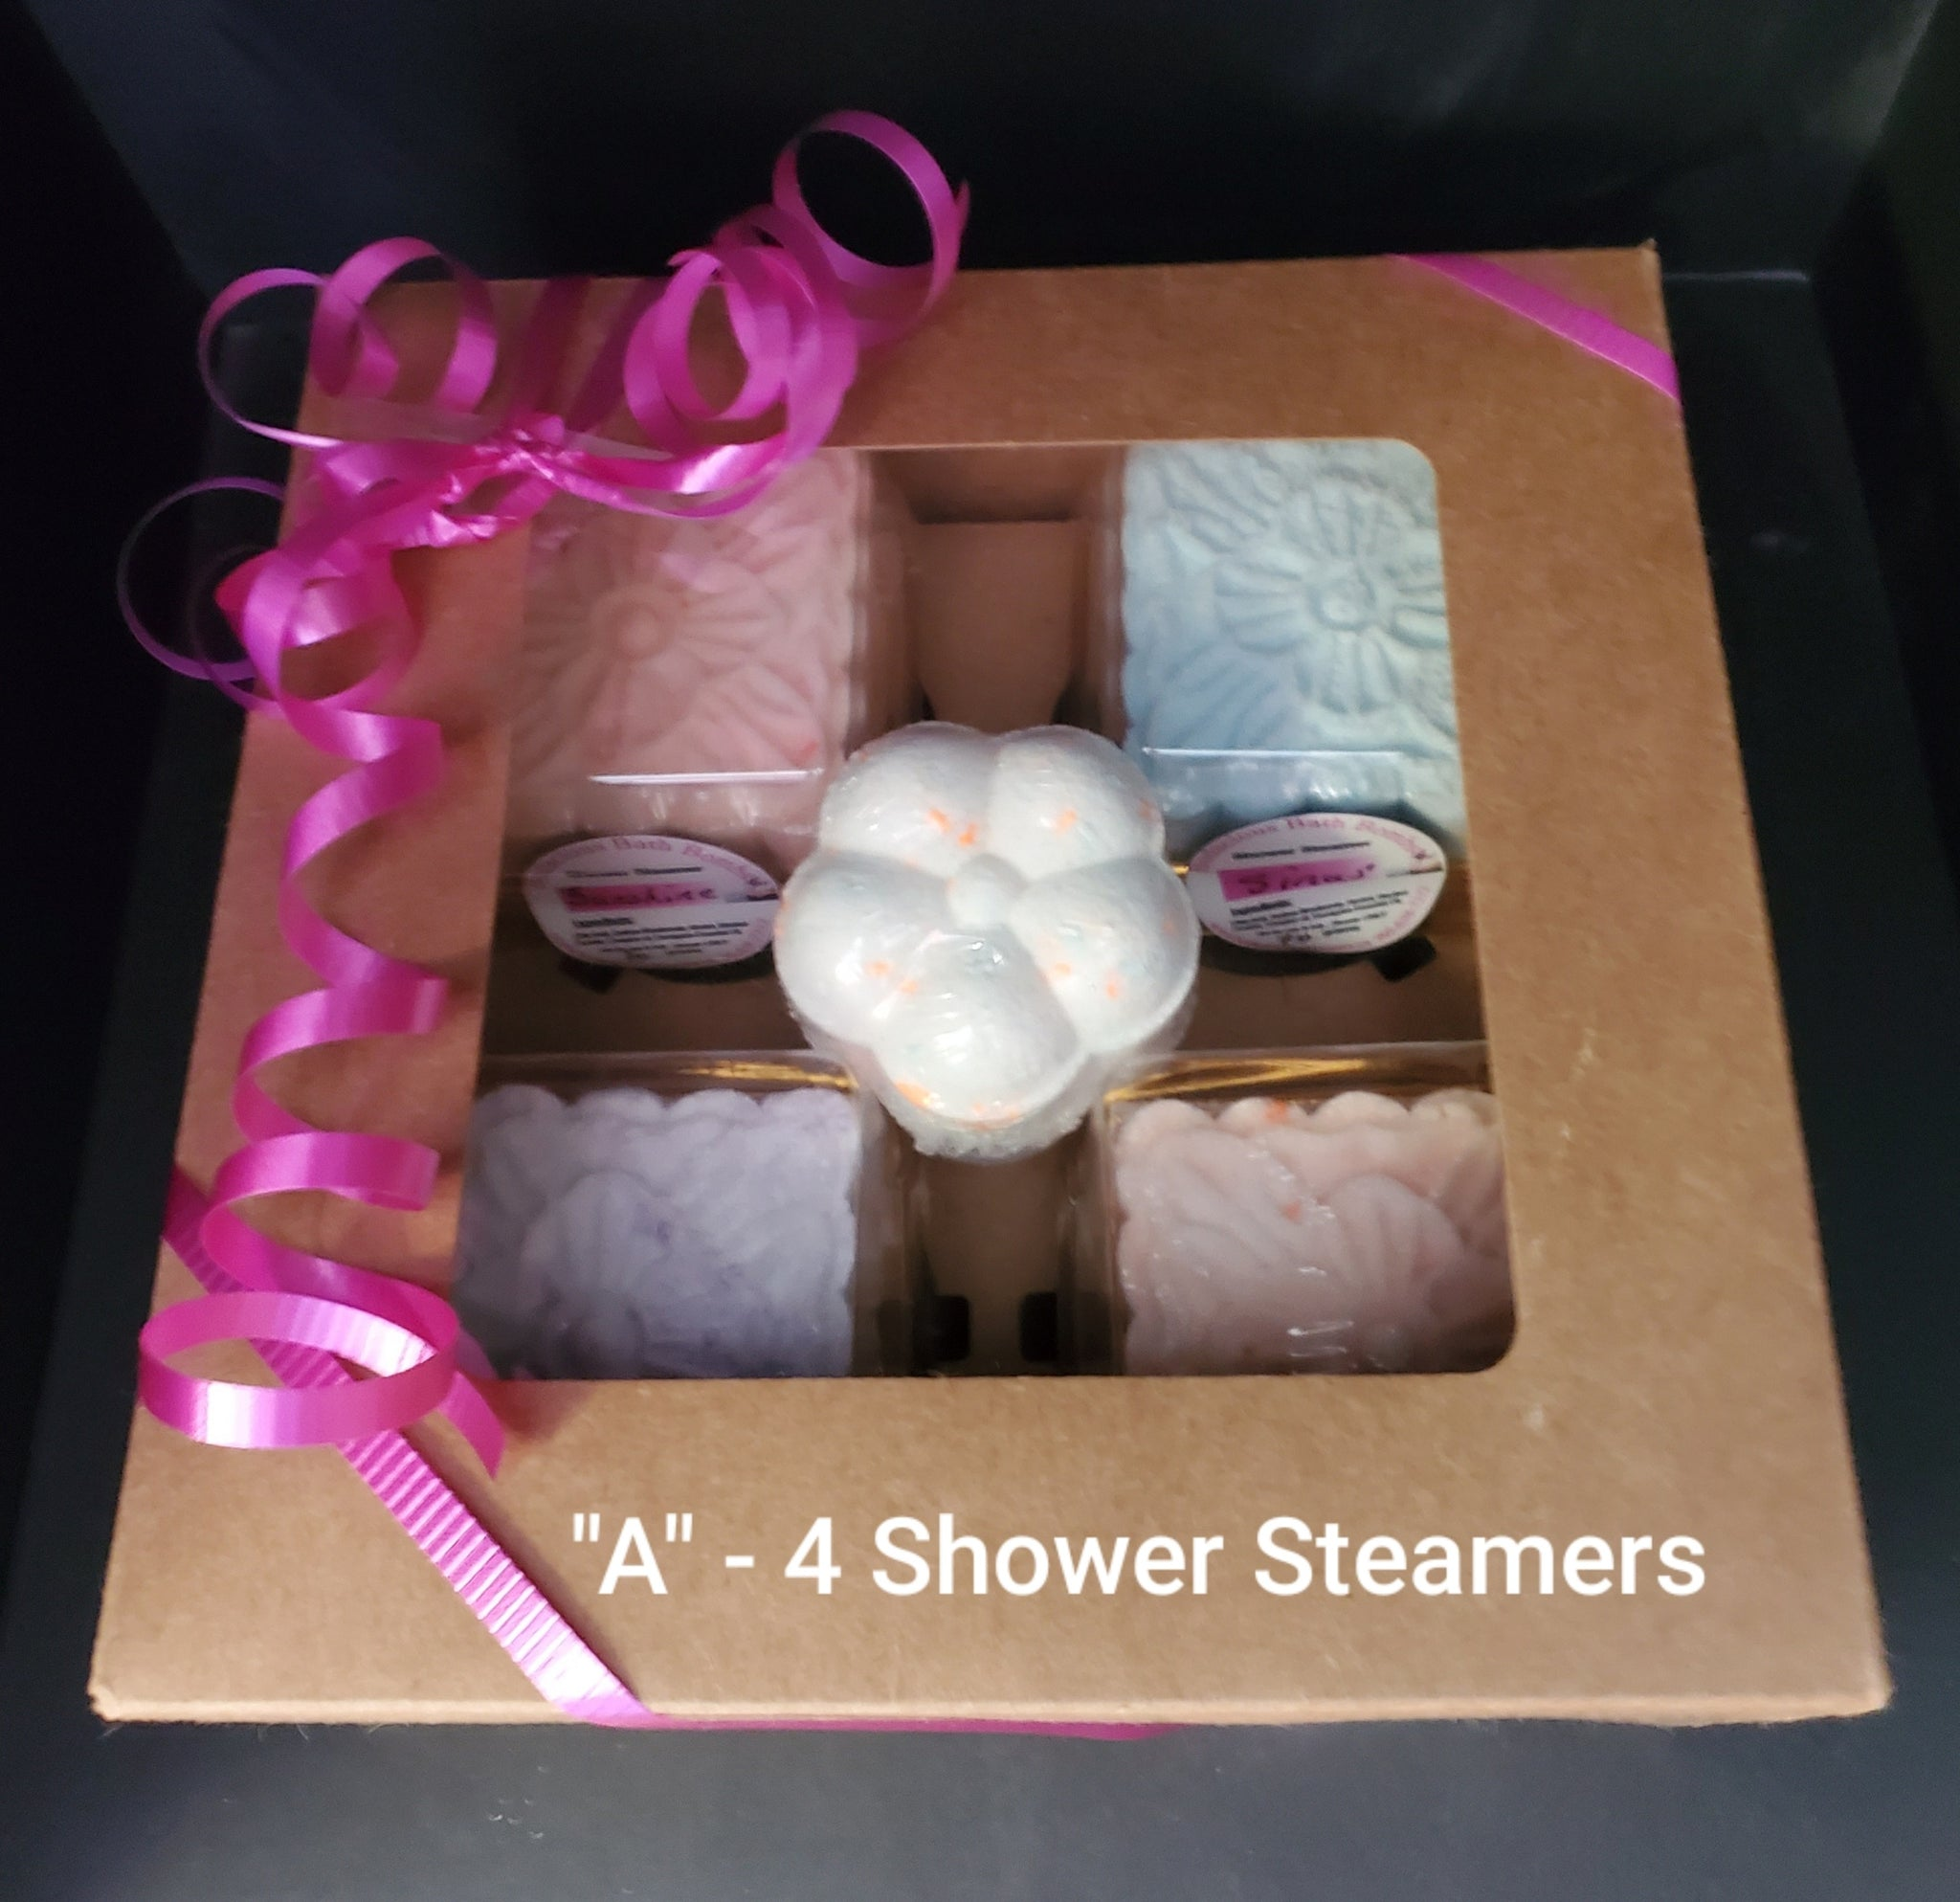 Shower Steamers (4) by Bodacious Bath Bombs - $20